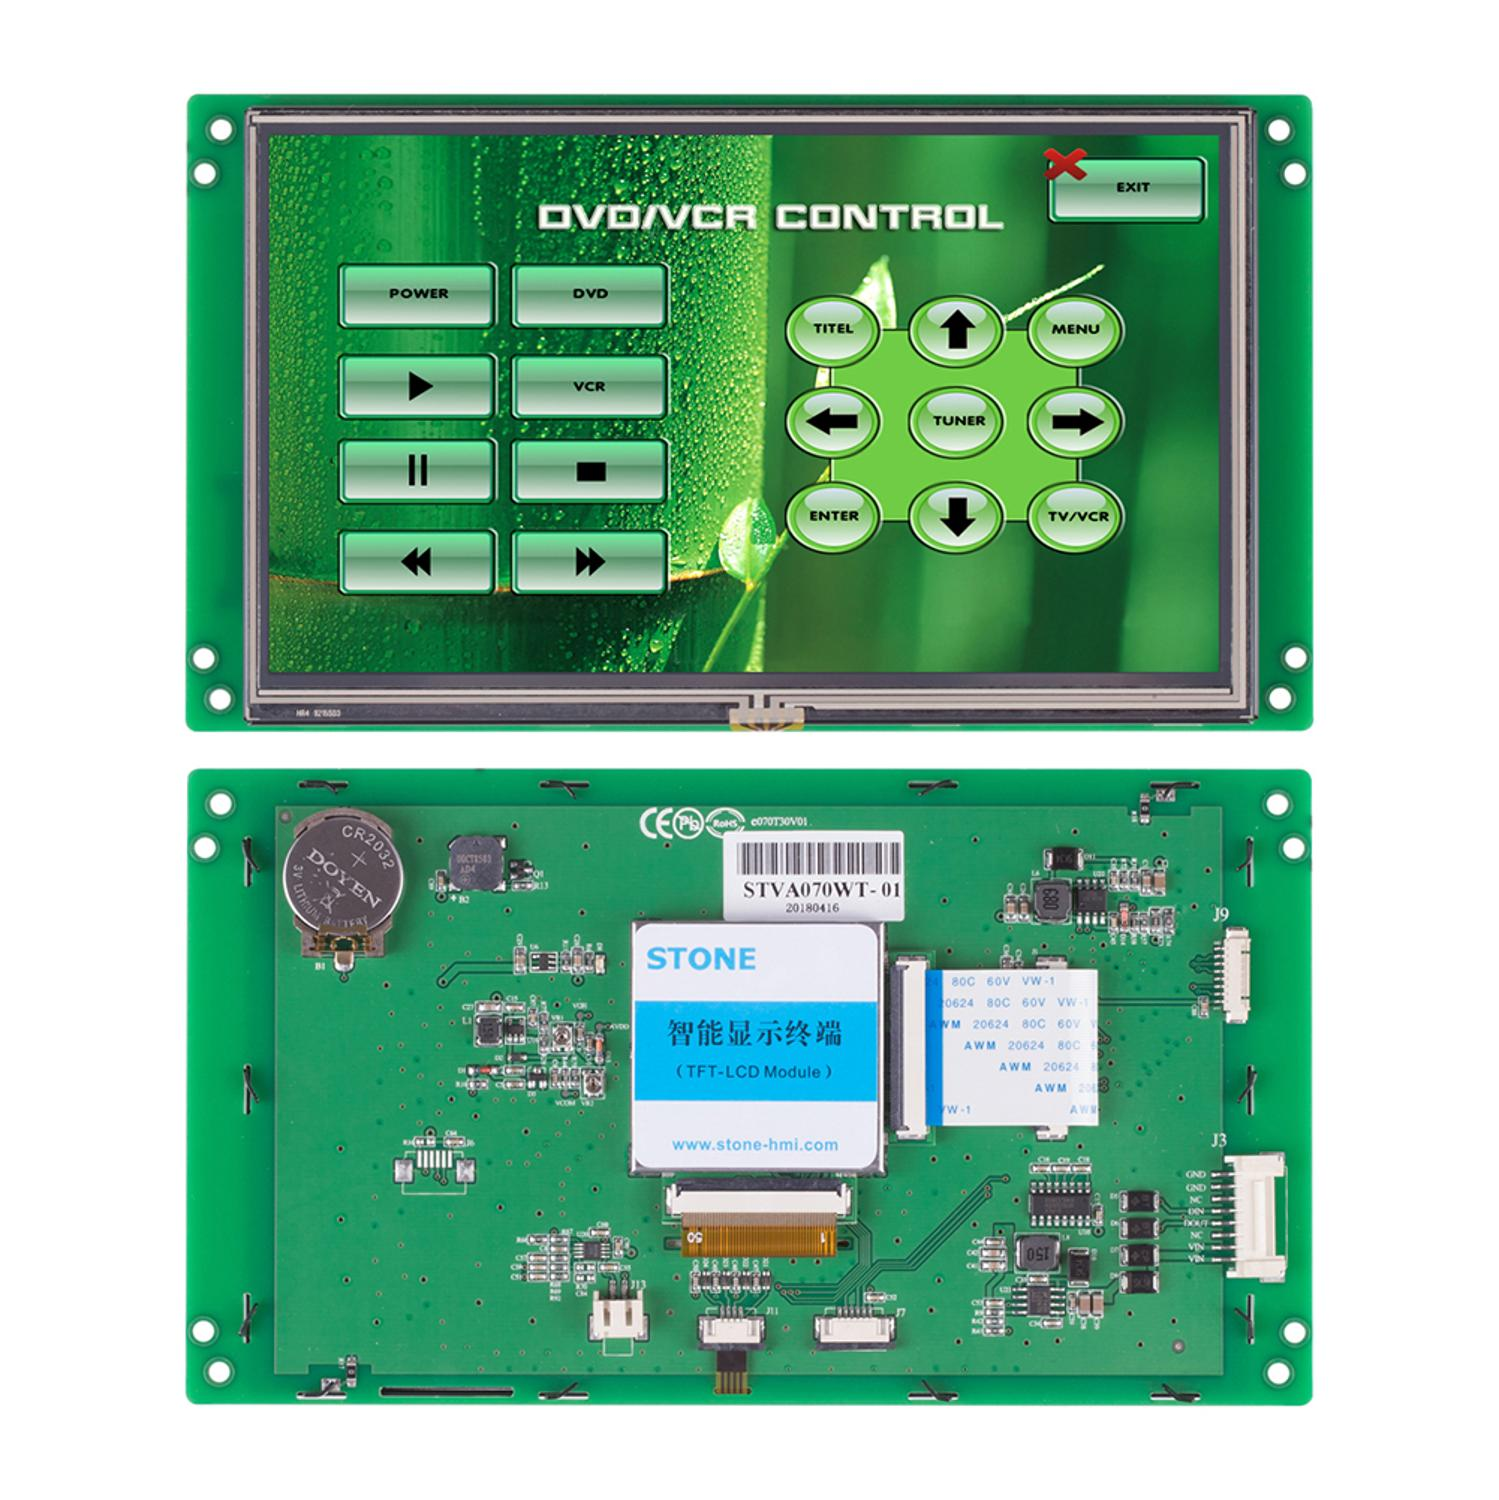 STONE 7 Inch HMI Smart TFT LCD Display Module With Controller  Board+ Program + Touch Screen + RS232/RS485 Interface